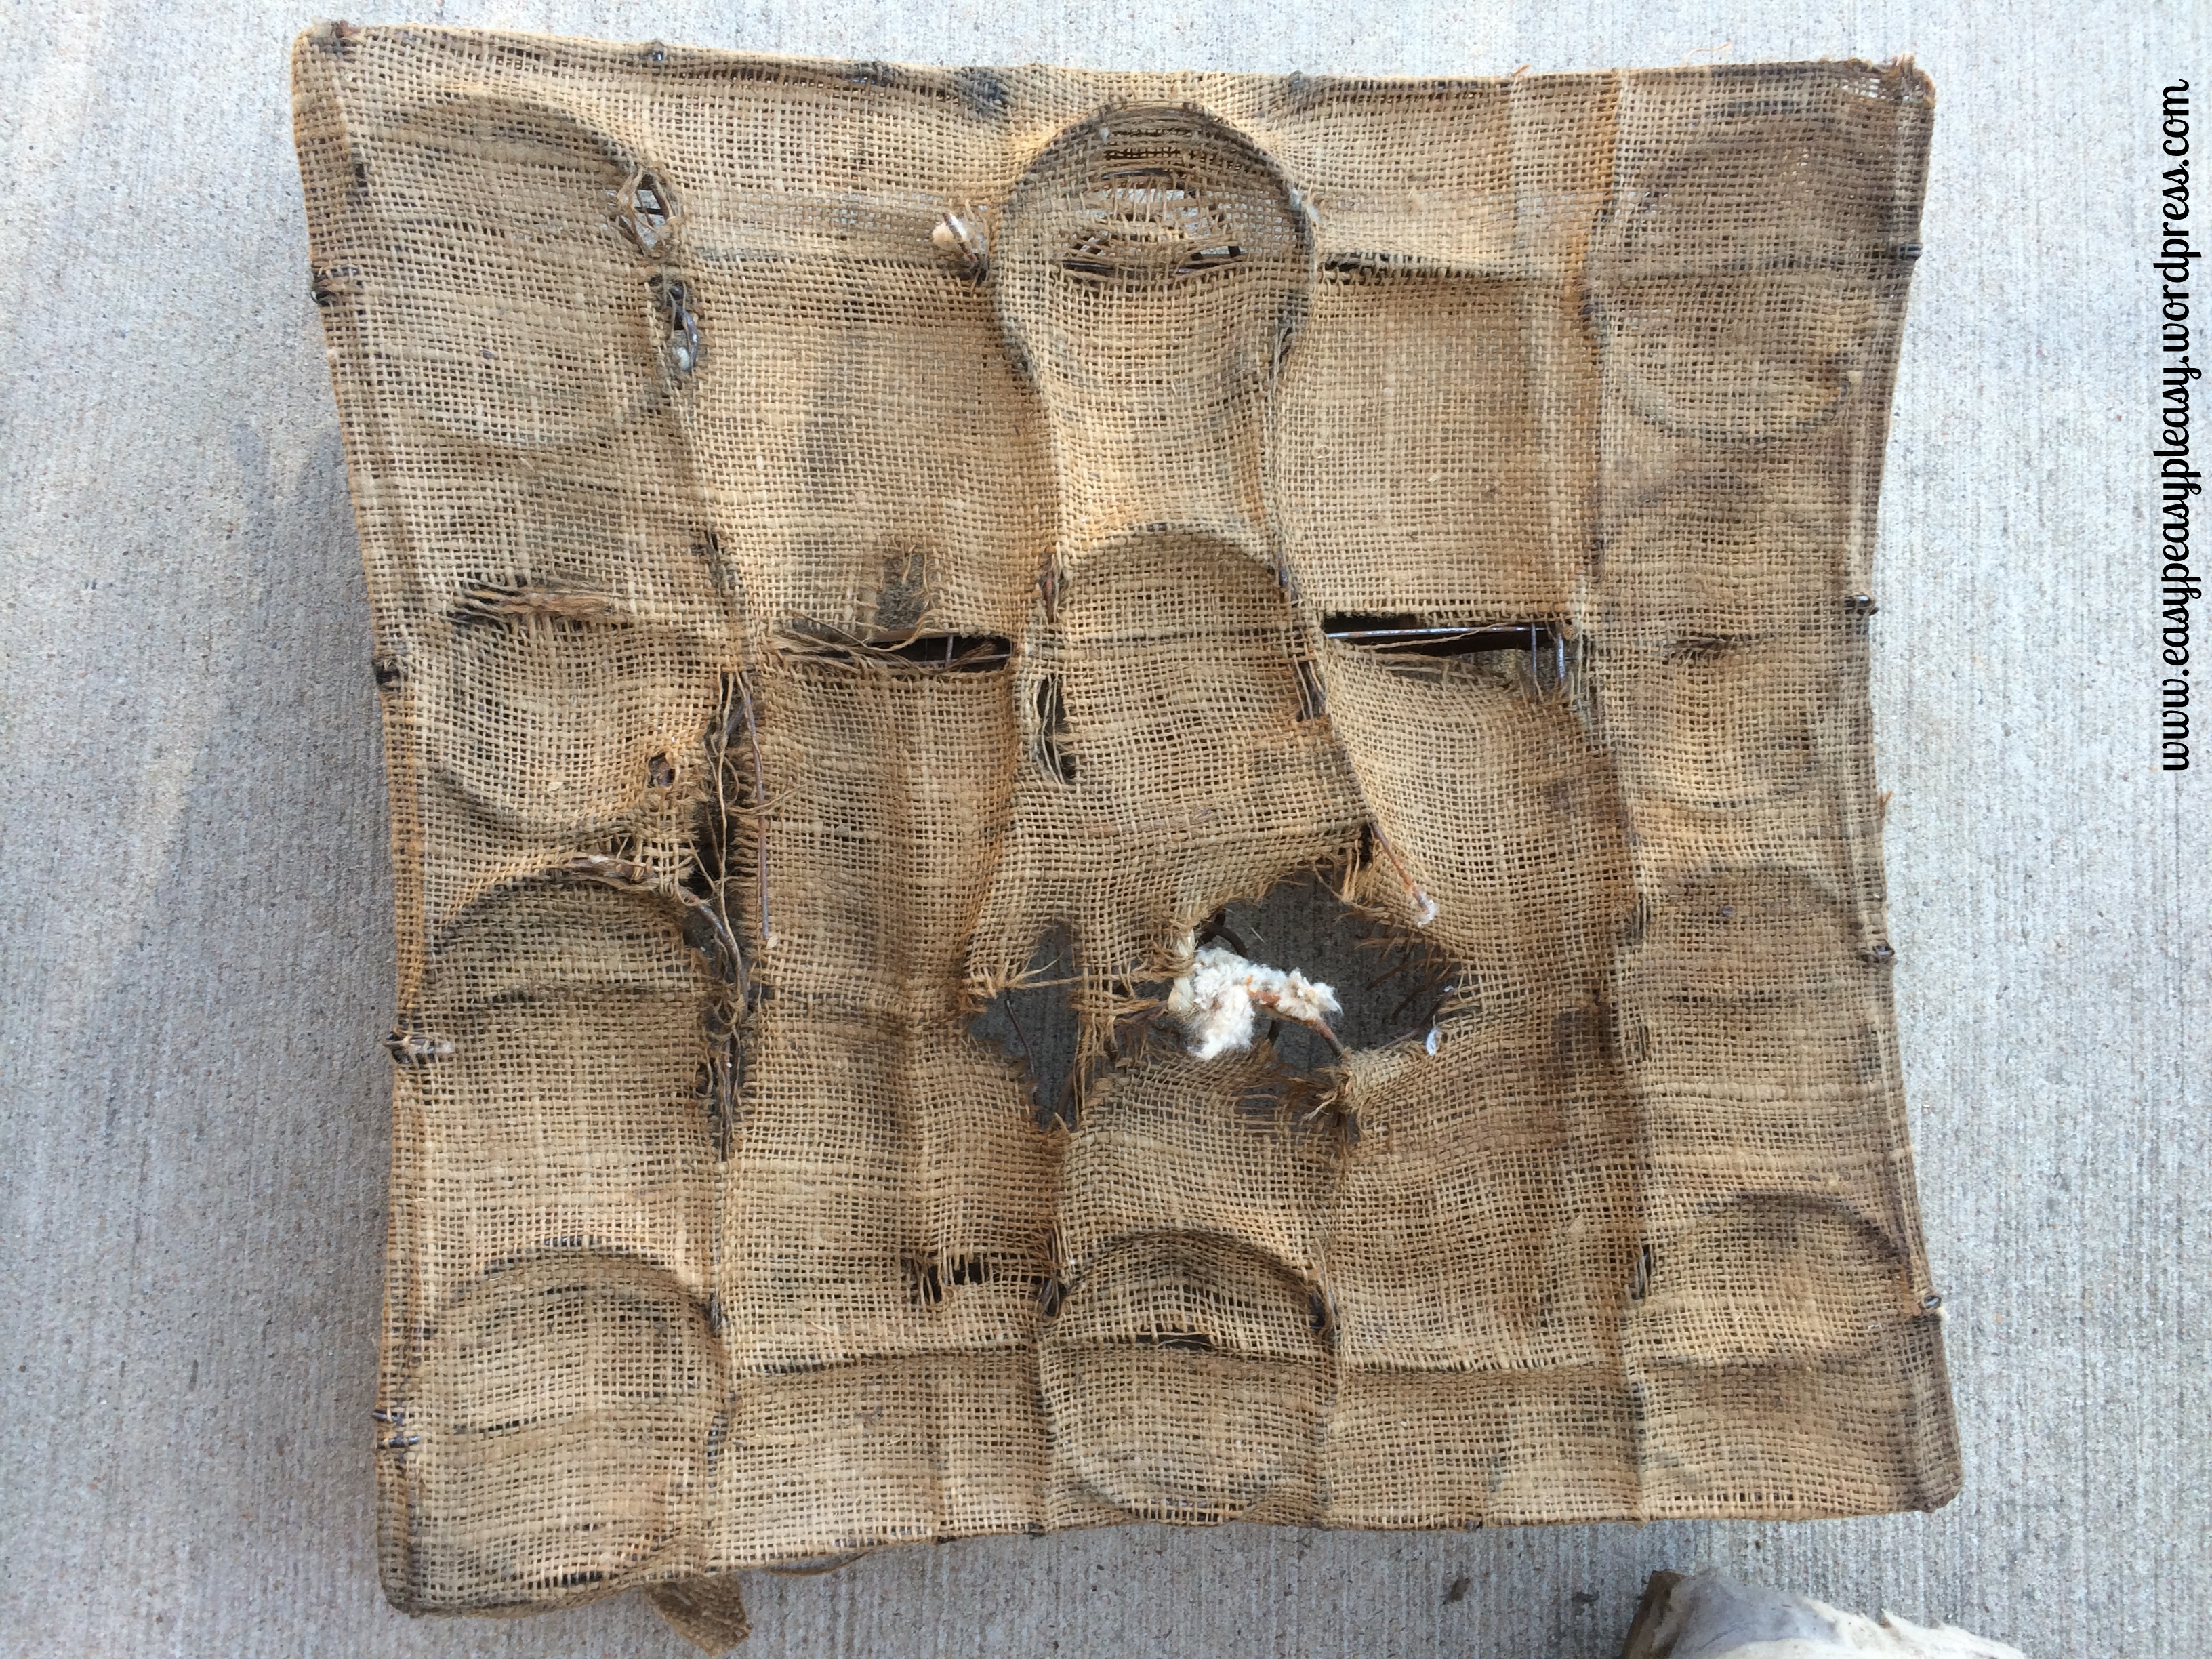 Restoring Wicker and dimanteling each layer